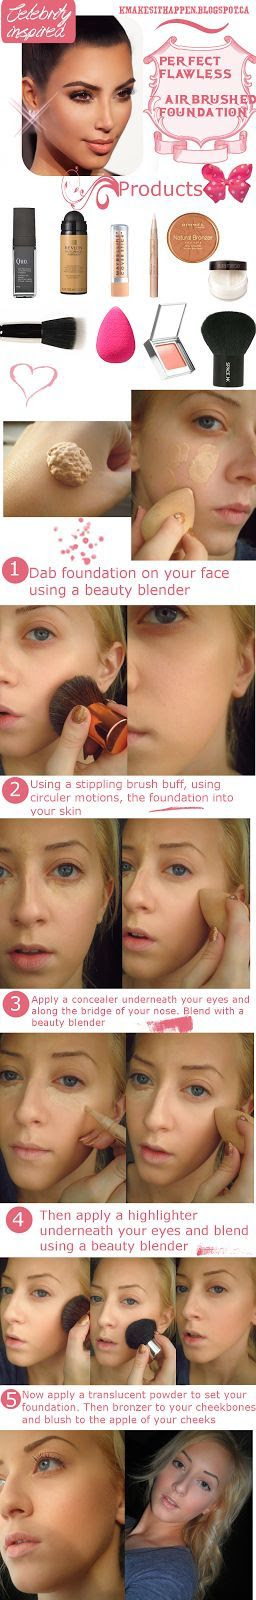 MAKEUP TRICKS 鈥?Flawless, Airbrushed Looking Foundation